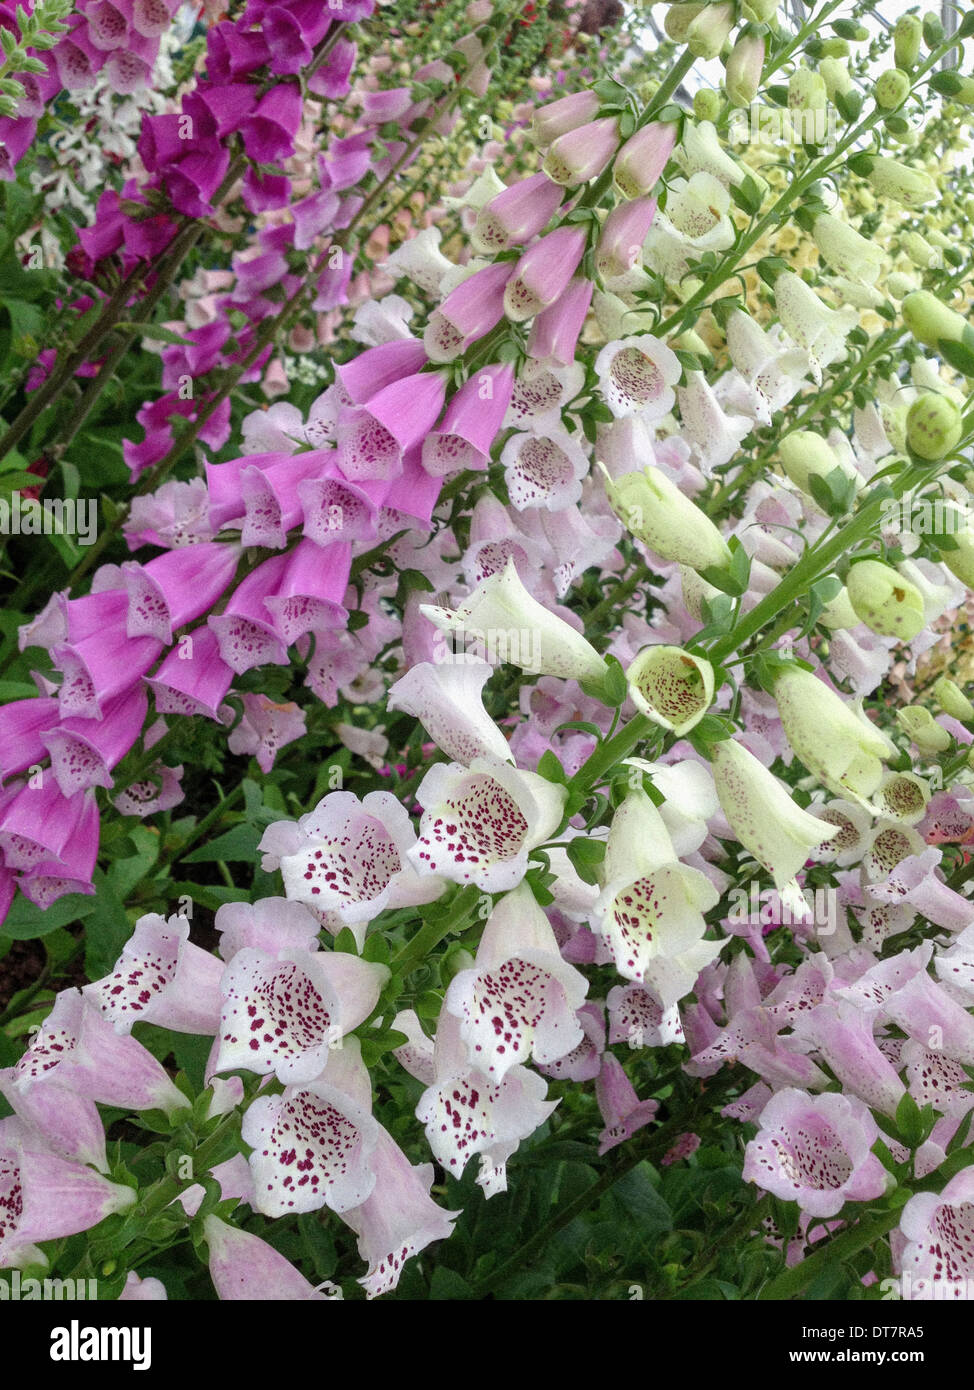 Foxgloves - Stock Image